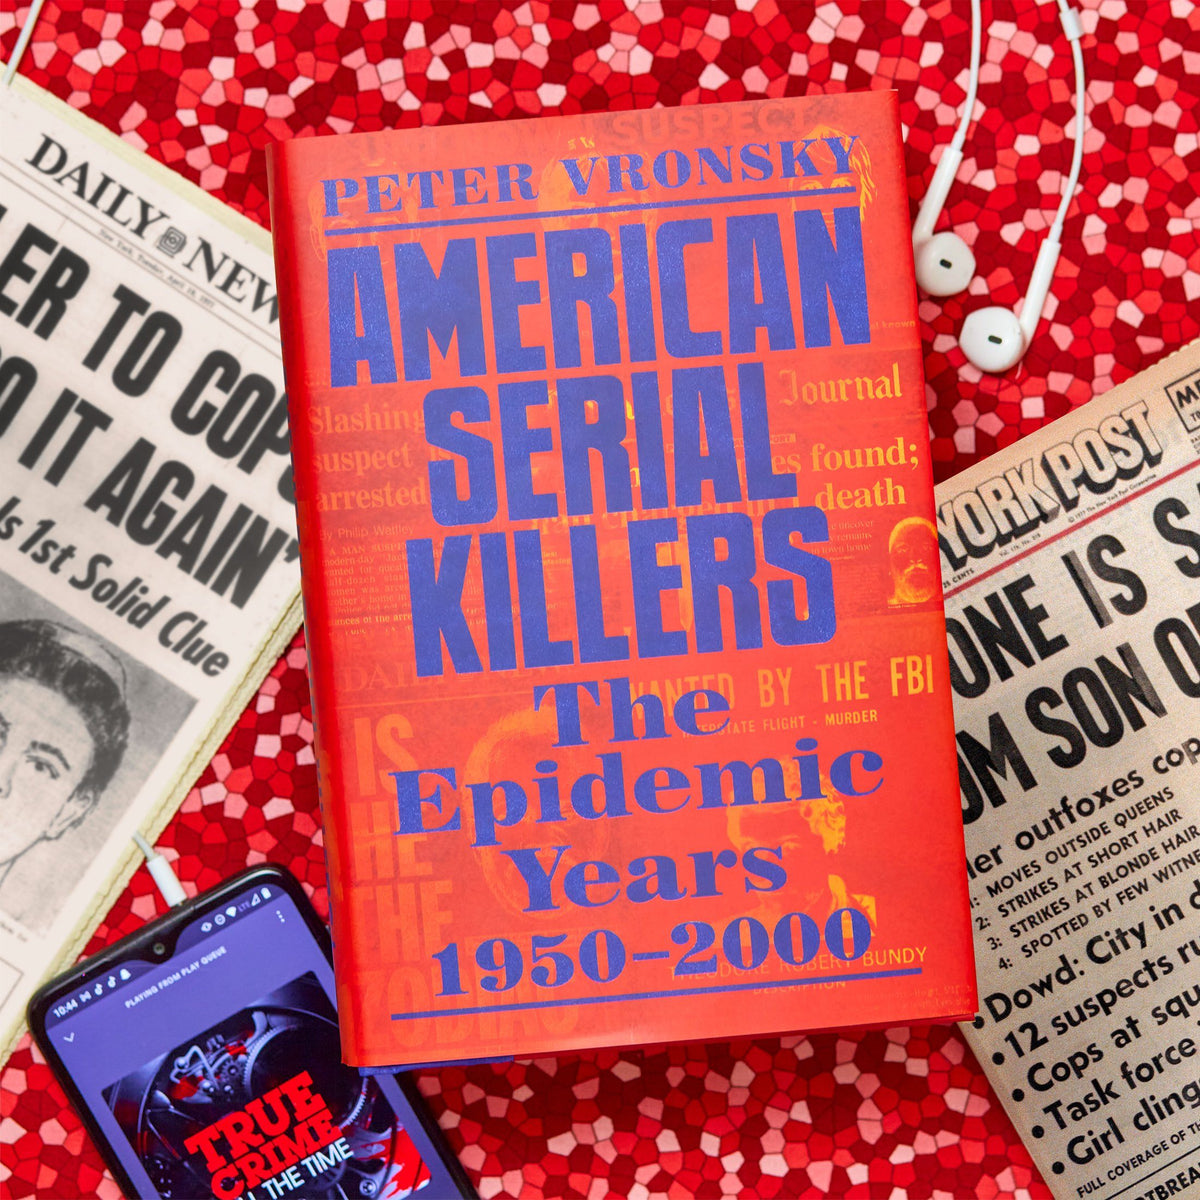 American Serial Killers Book - The Epidemic Years 1950-2000